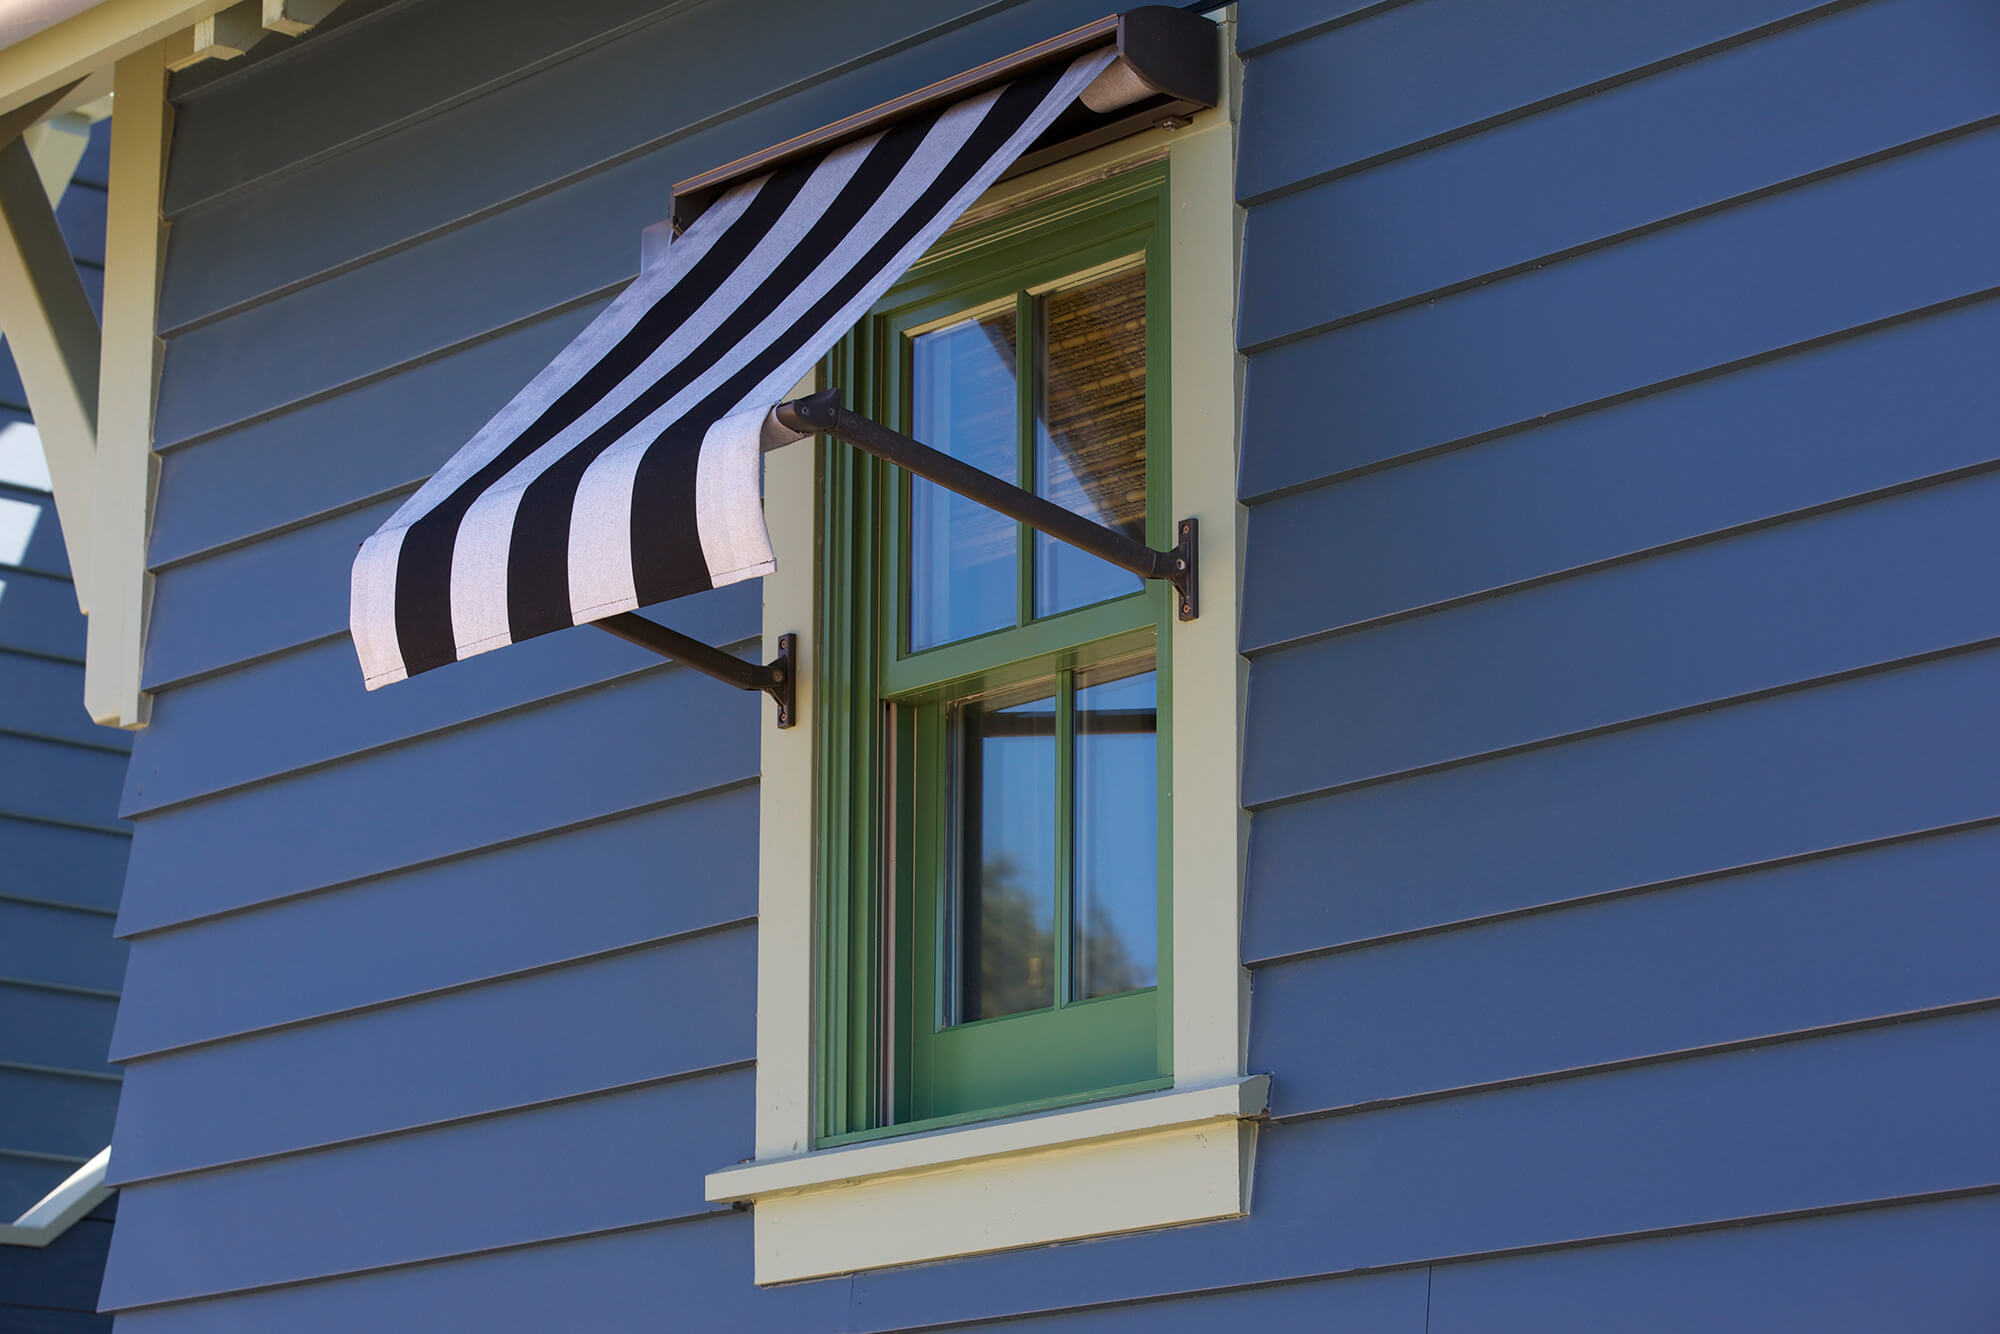 Window Awning Made With Black And White Striped Sunbrella Fabric